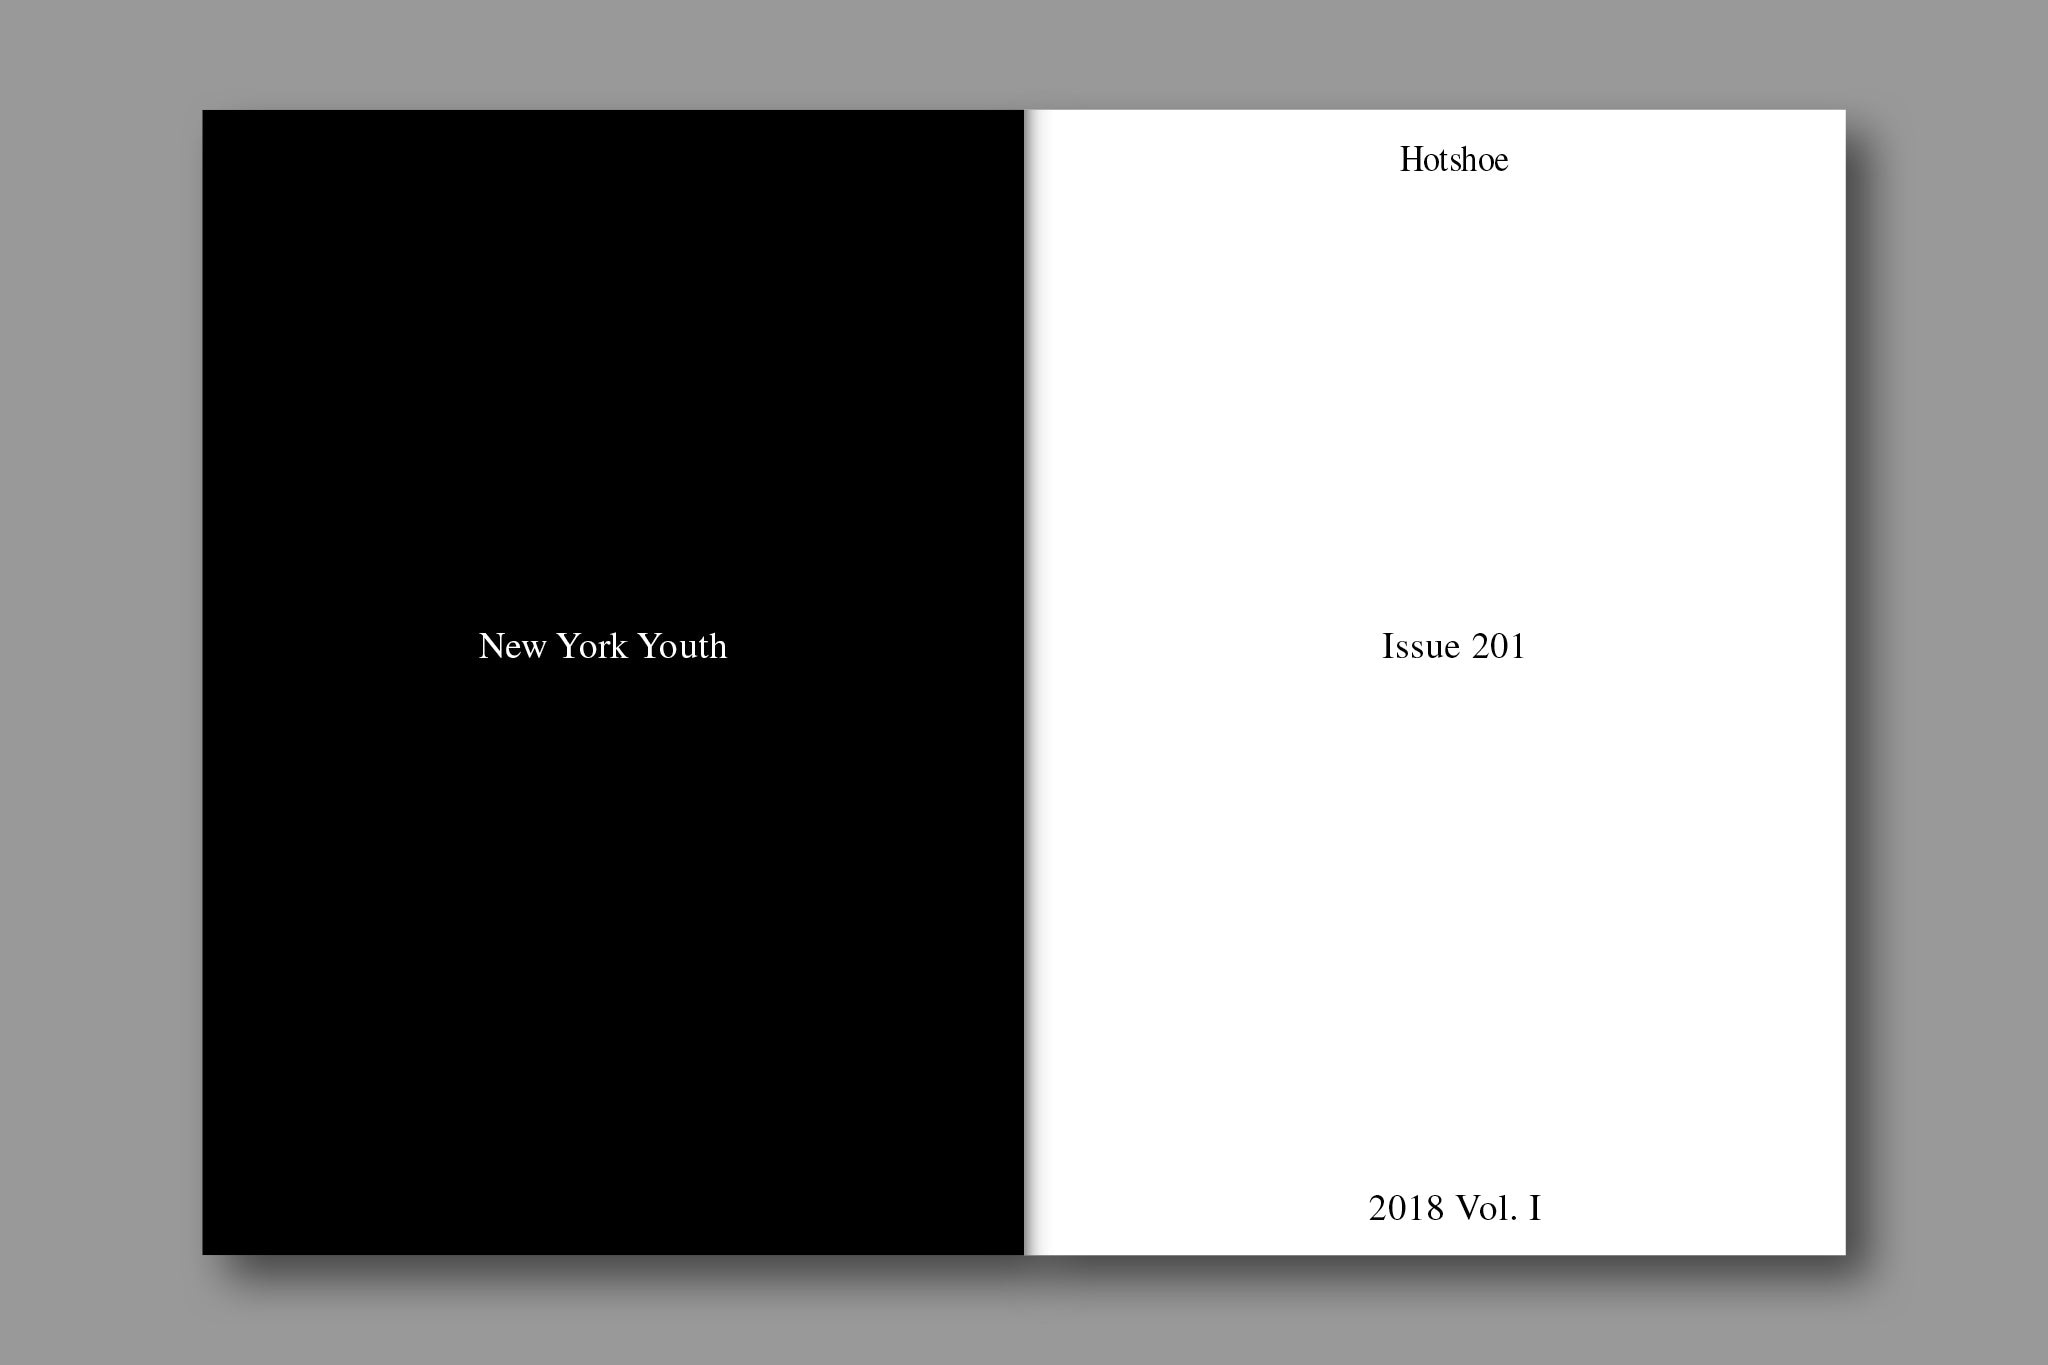 Issue 201: New York Youth